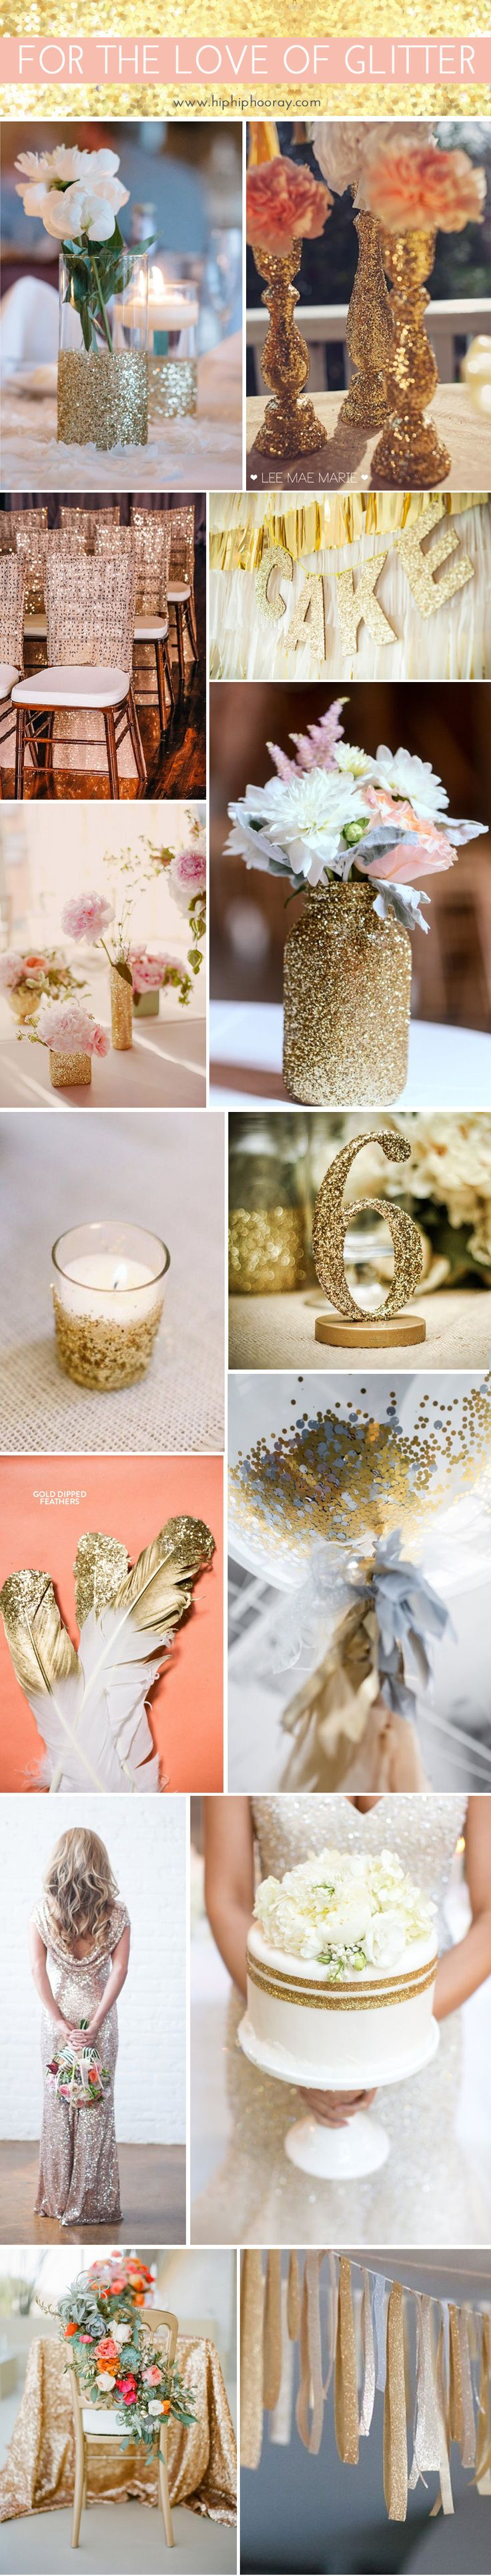 For the love of glitter! Sparkly wedding & event inspiration | Hip Hip Hooray